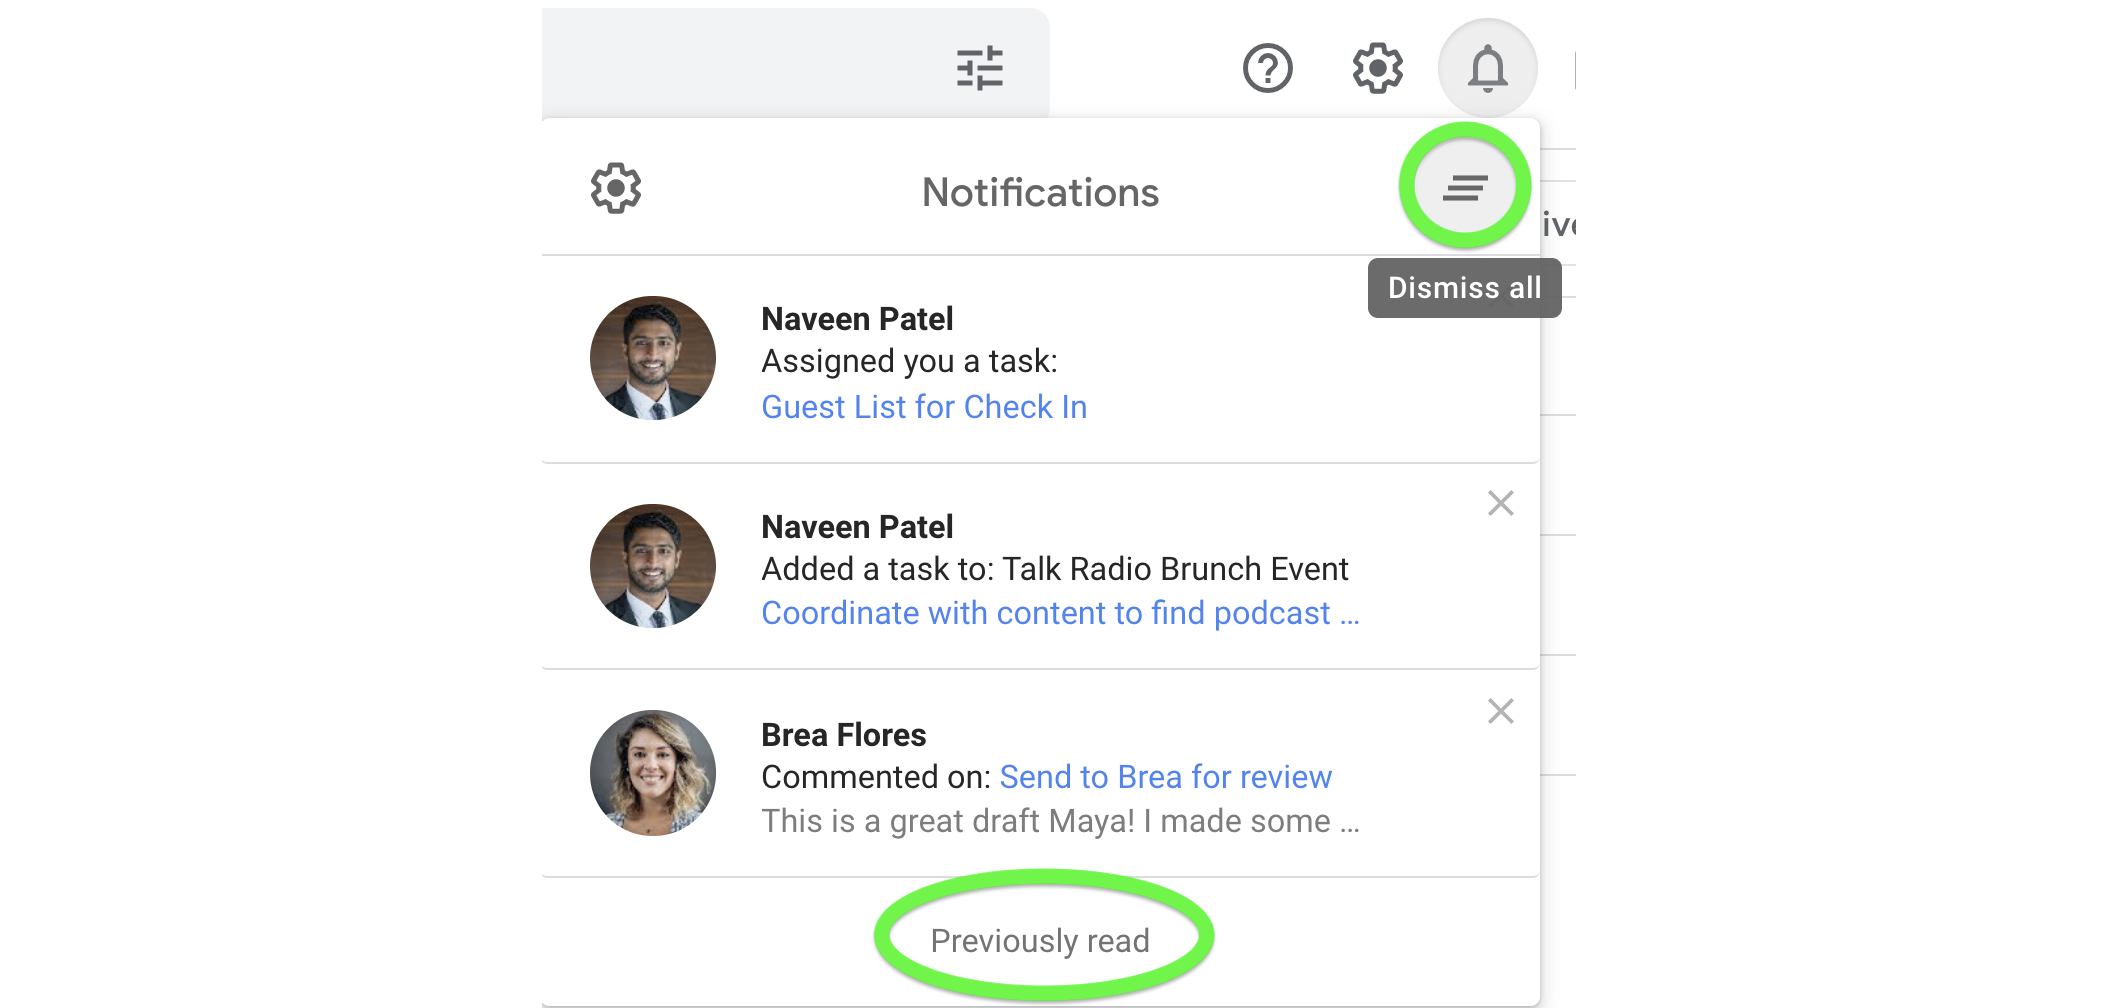 View previously read or dismiss all notifications from the notifications dropdown